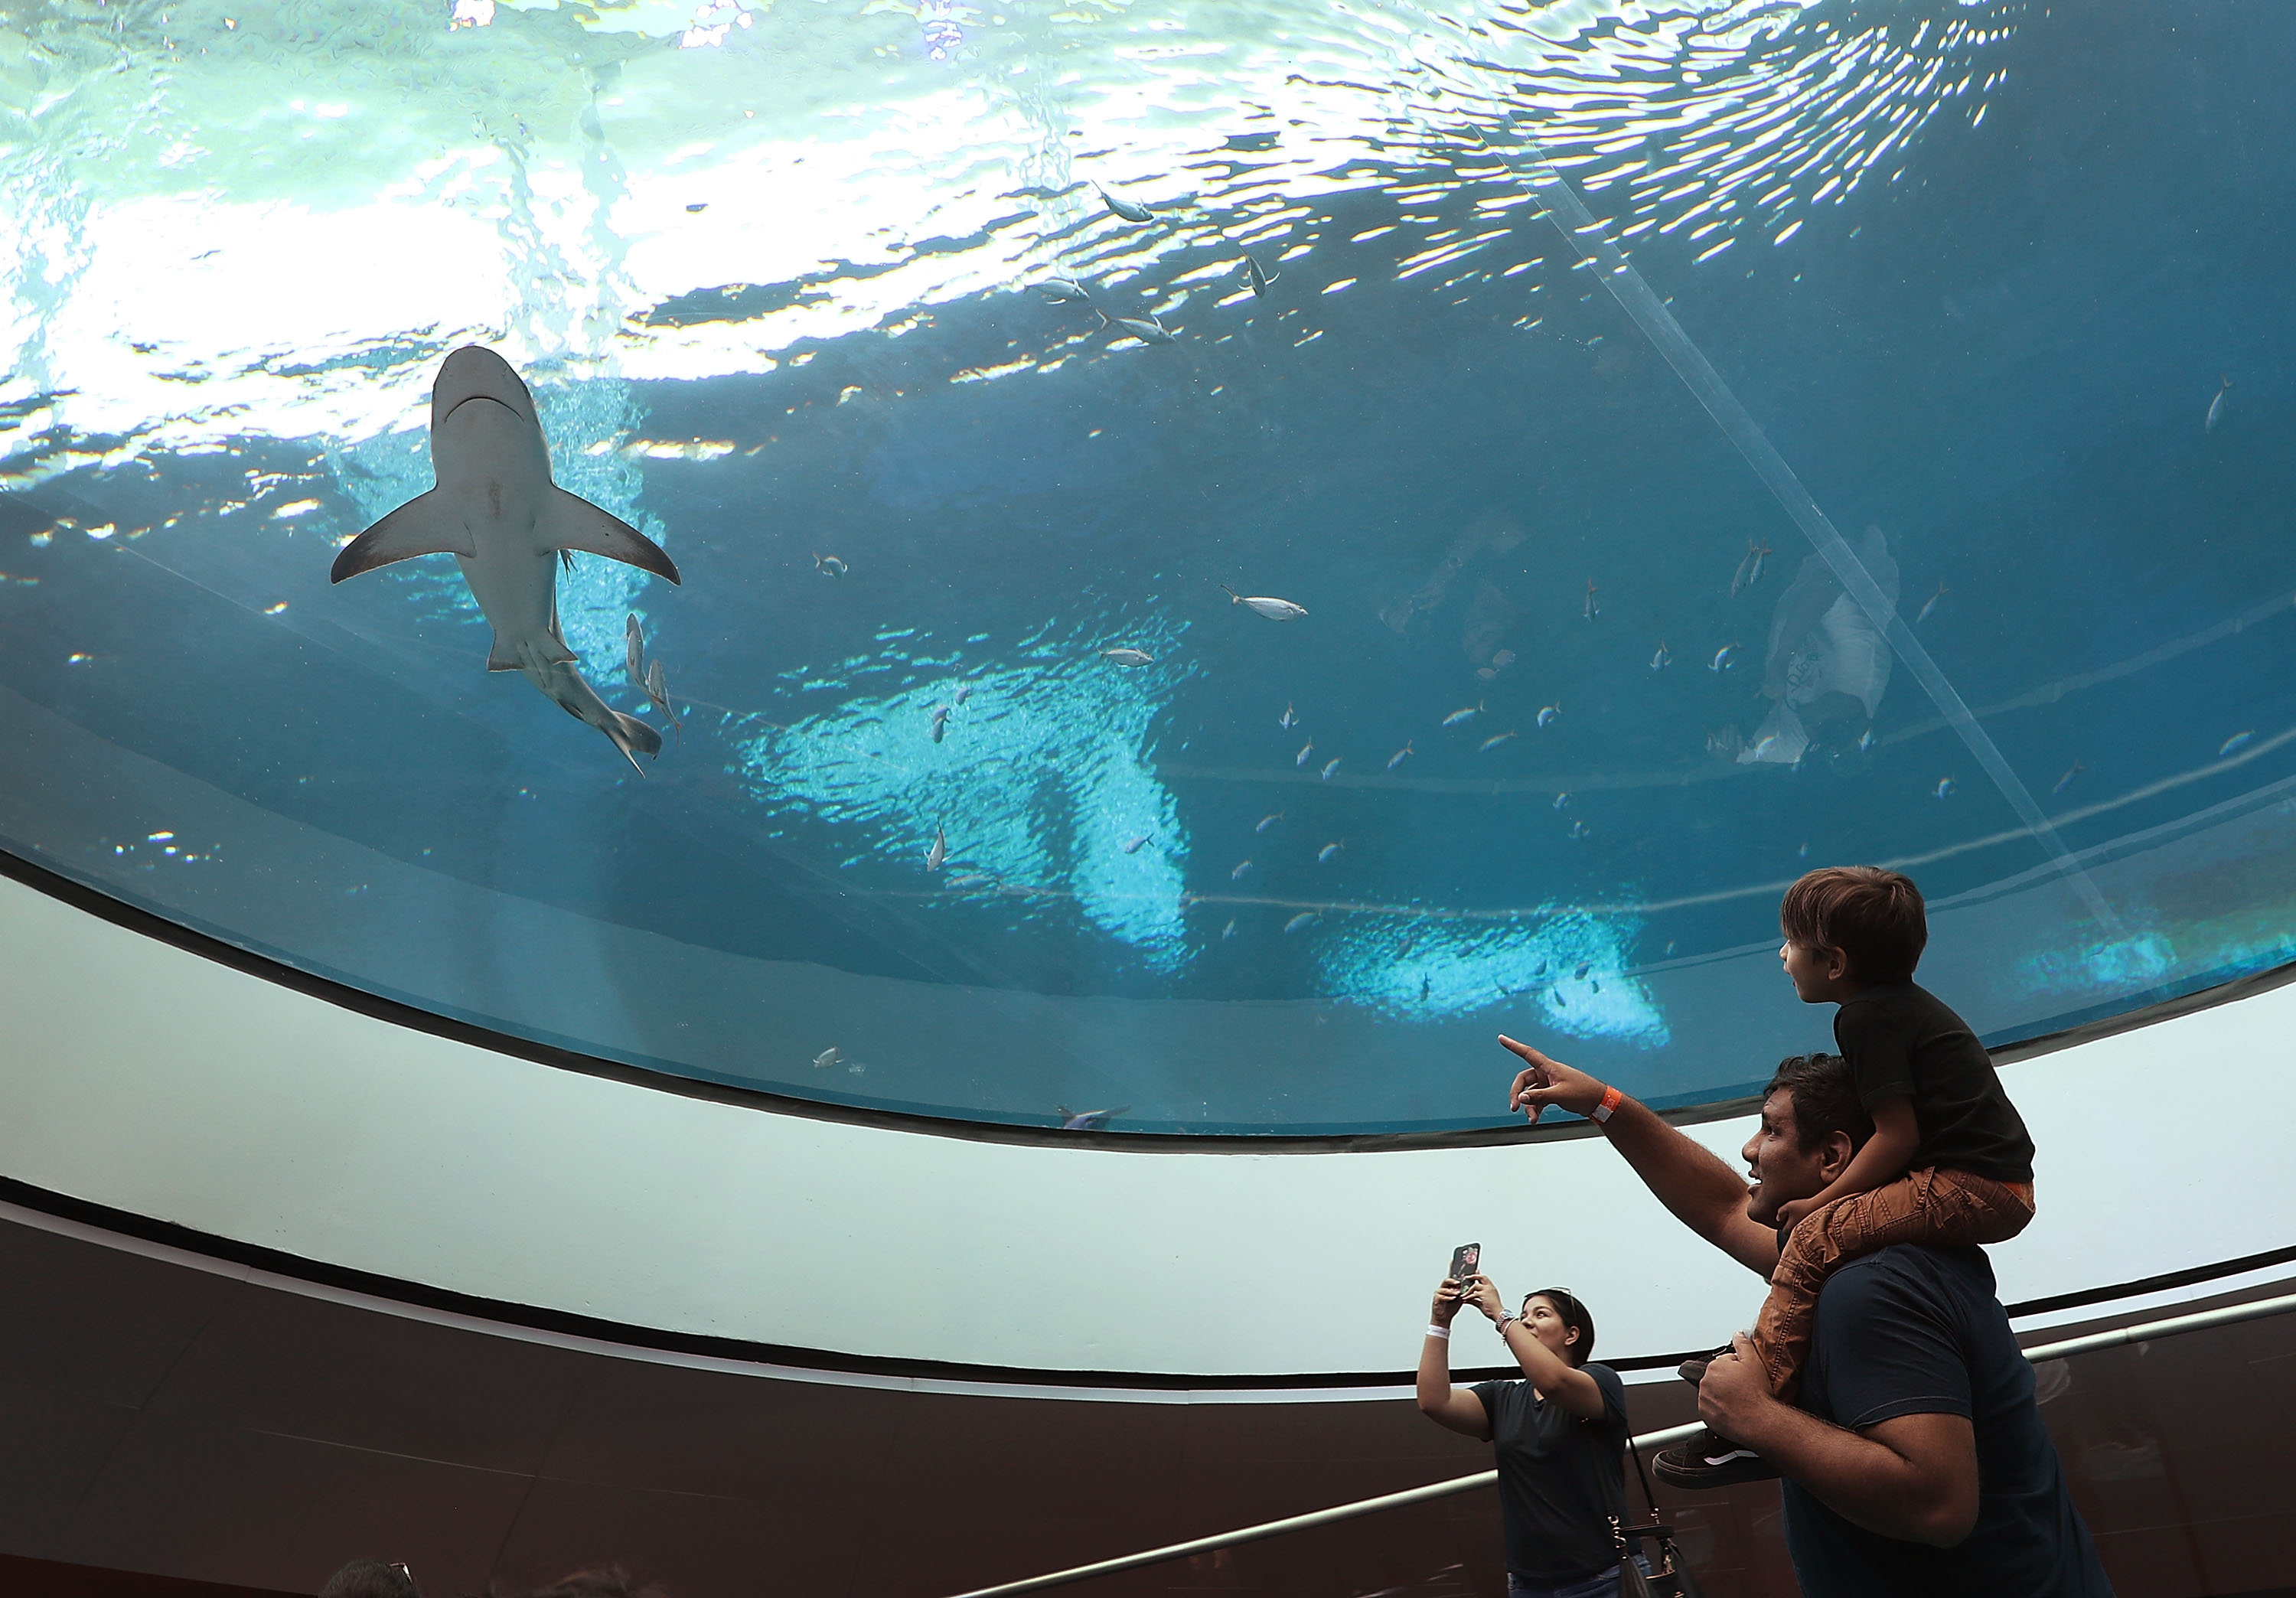 A family watching a shark at the gulf stream habitat at the frost museum of science in Miami.